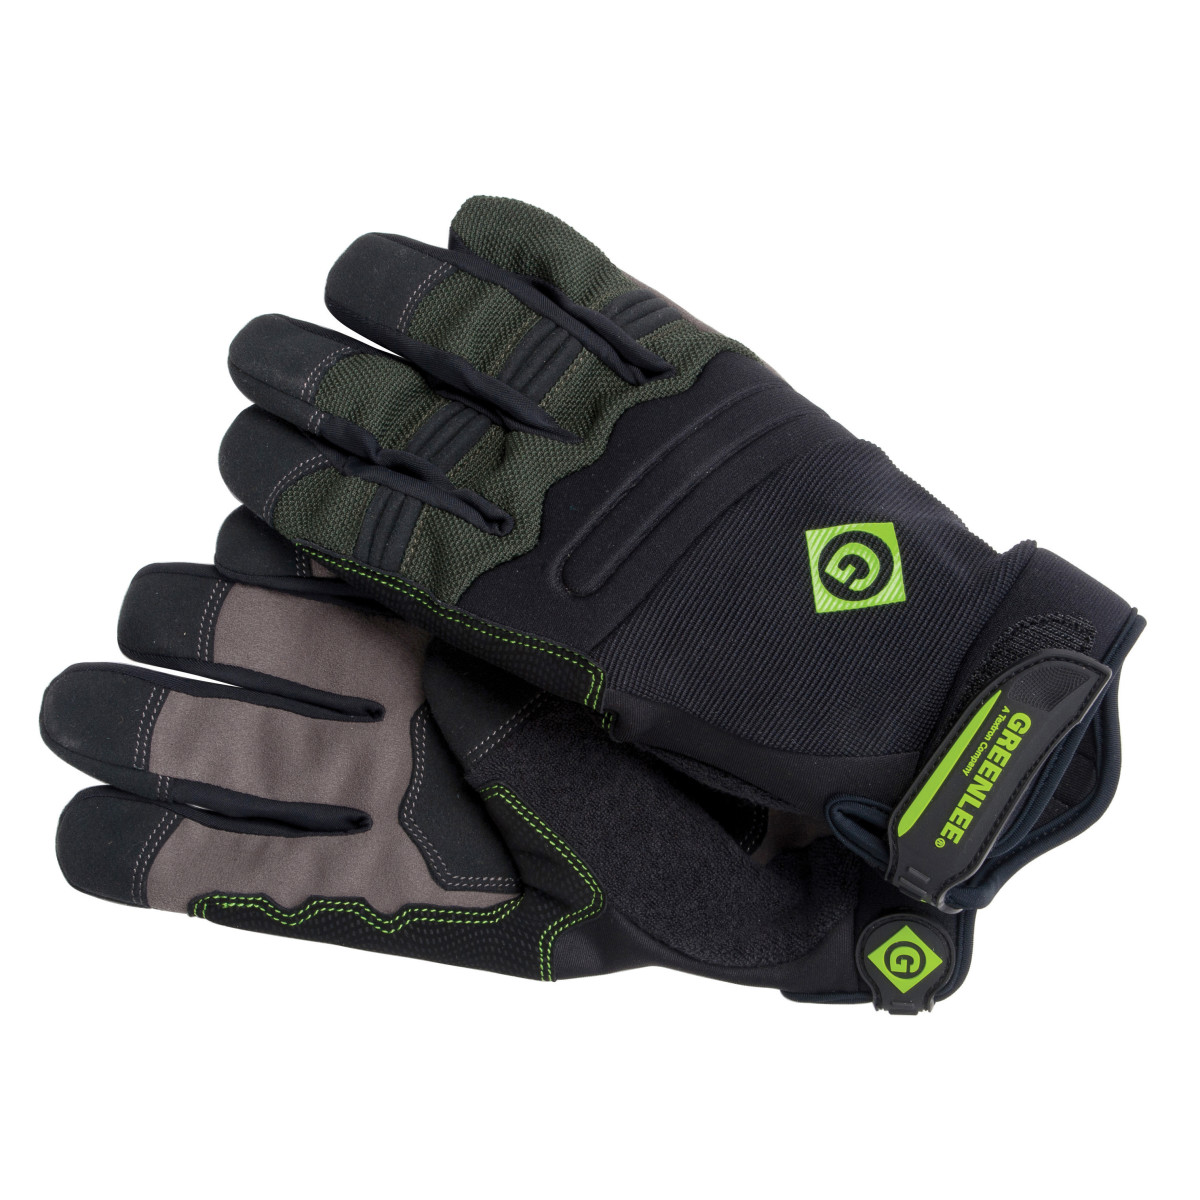 Greenlee 0358-14L TRADESMAN Gloves - Large